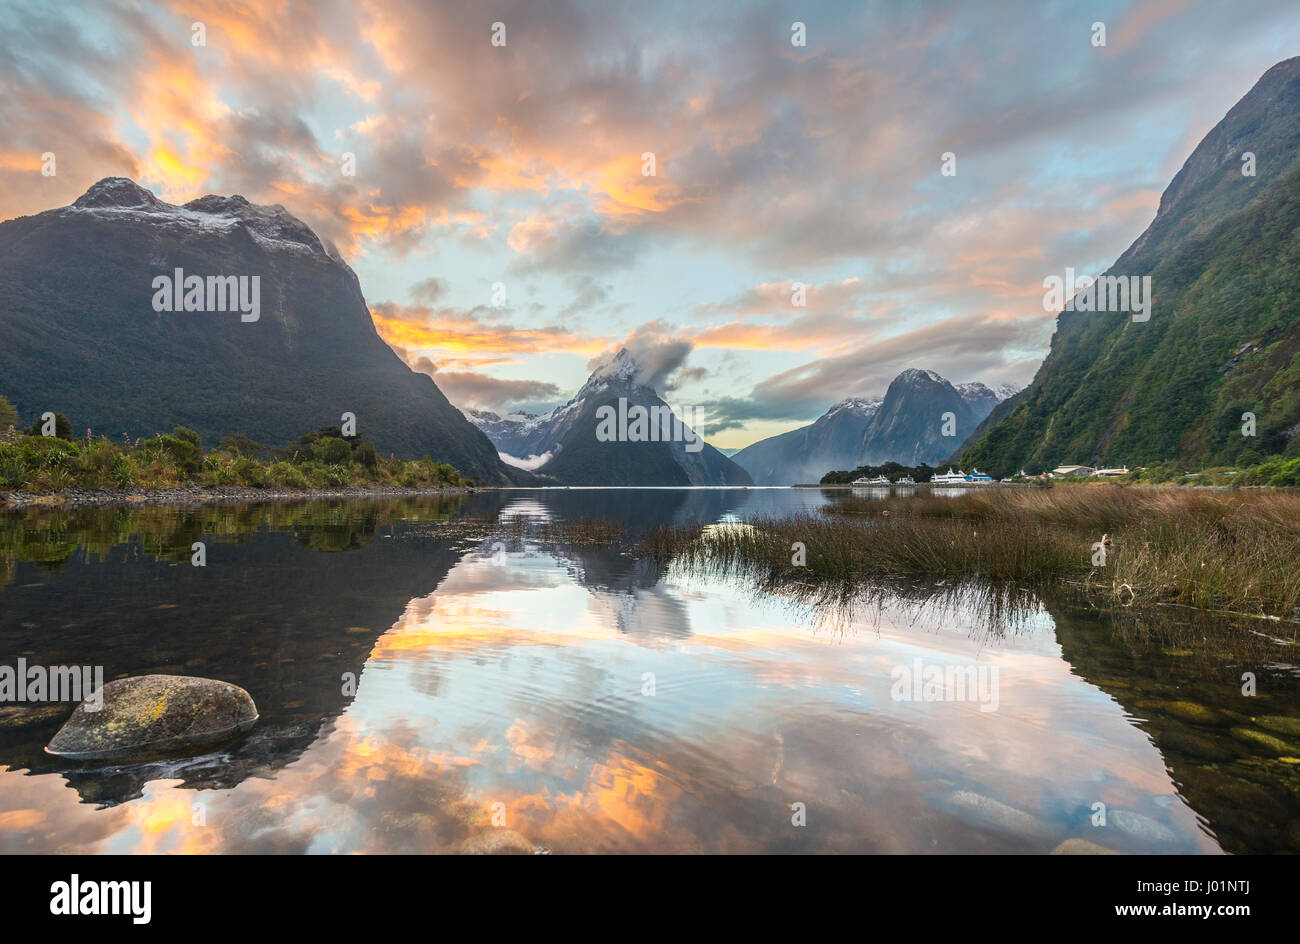 Mitre Peak reflecting in the water, sunset, Milford Sound, Fiordland National Park, Te Anau, Southland Region, Southland - Stock Image